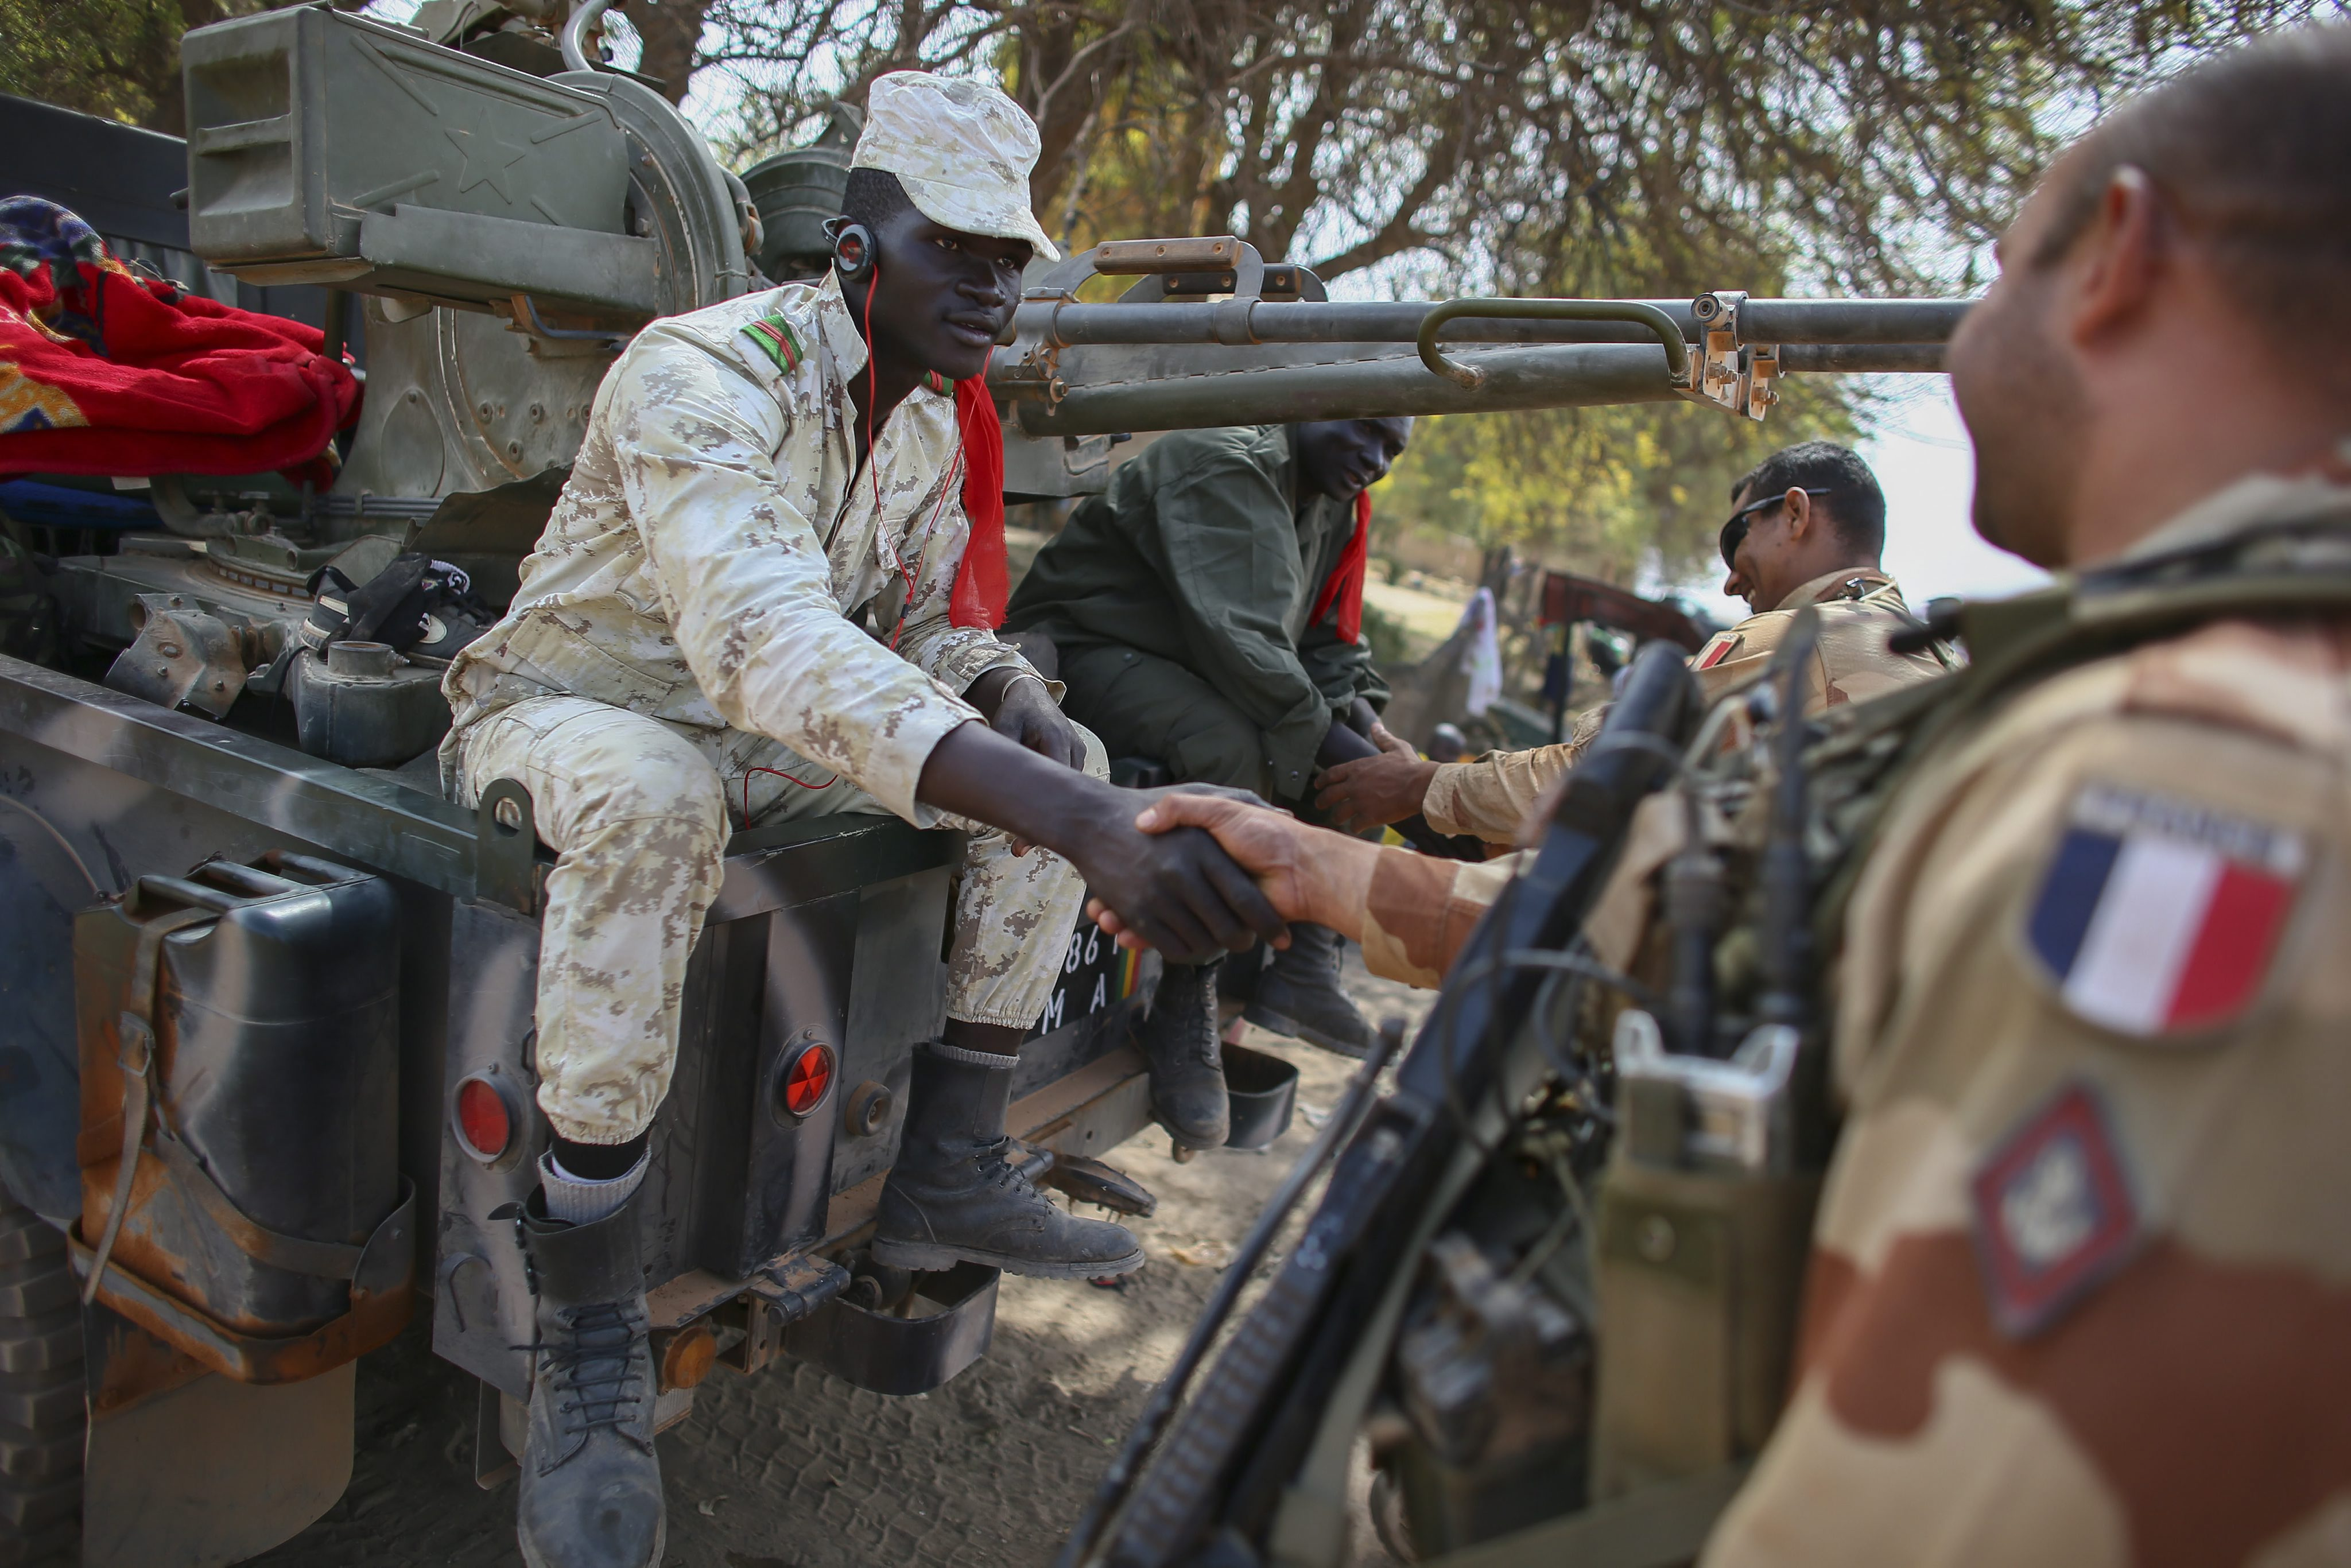 Gallery: US aid French troops in Mali conflict – 22 January 2013